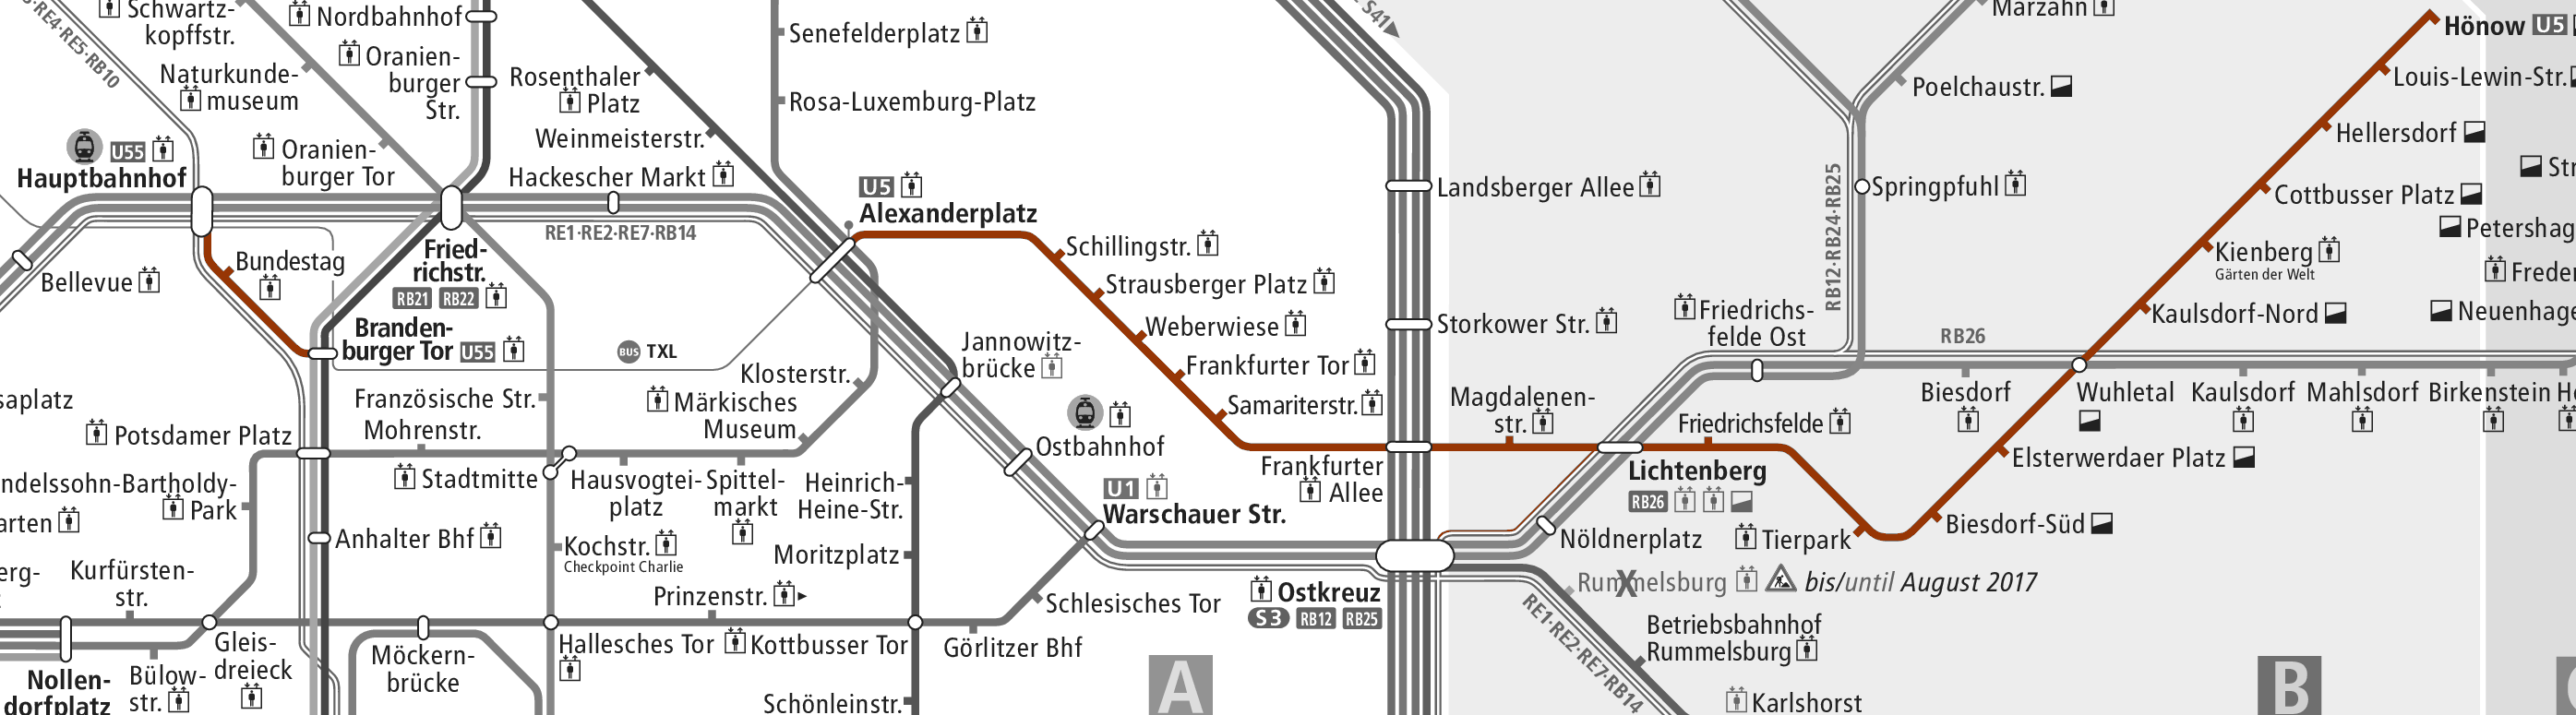 map of current U5 line, close up